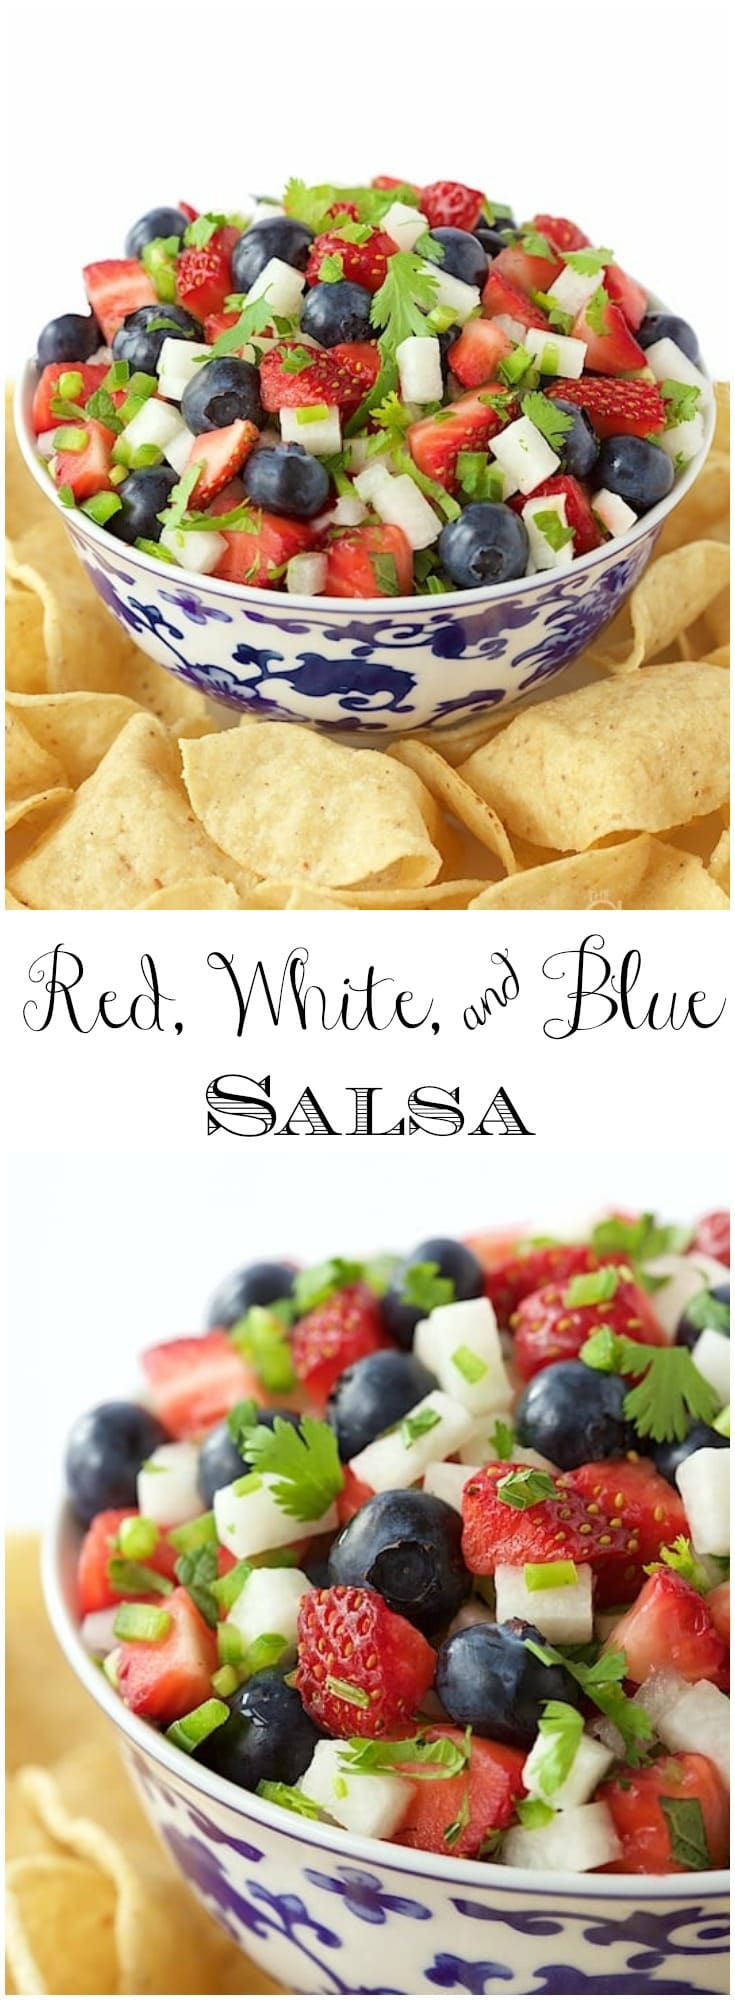 This salsa is bright, fresh, delicious, and oh so patriotic!